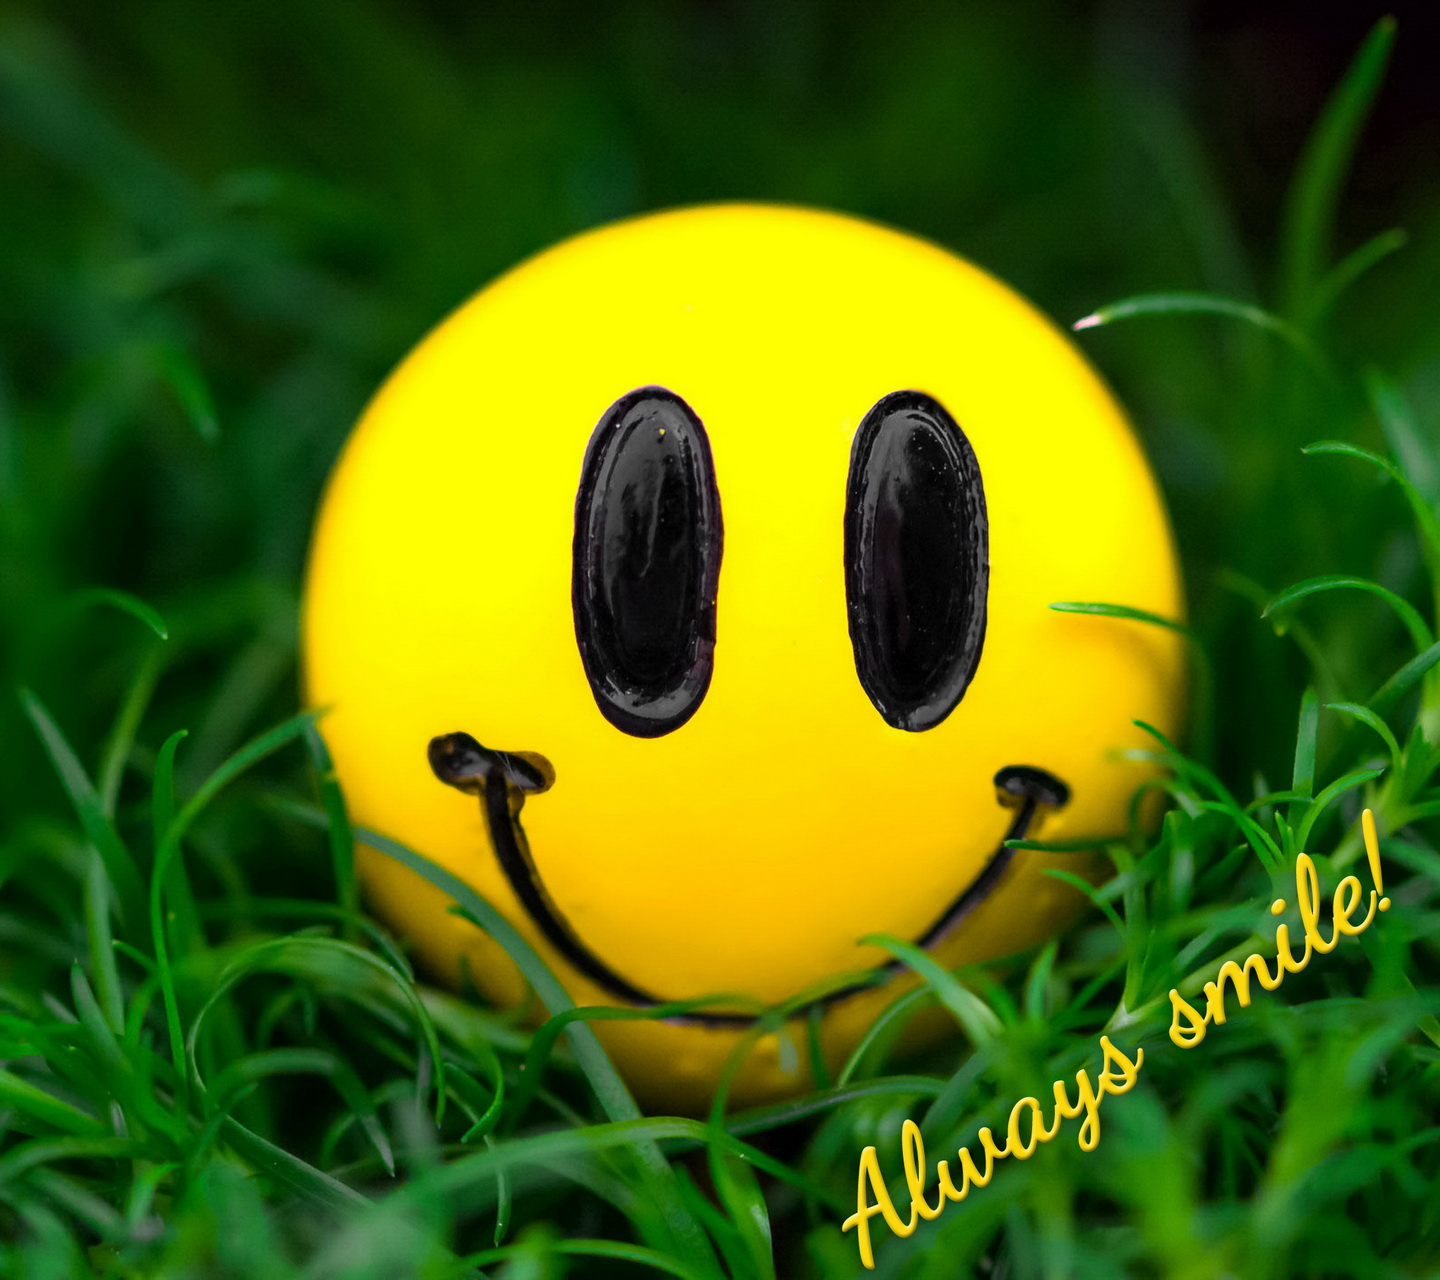 smileys wallpapers for mobile - photo #1